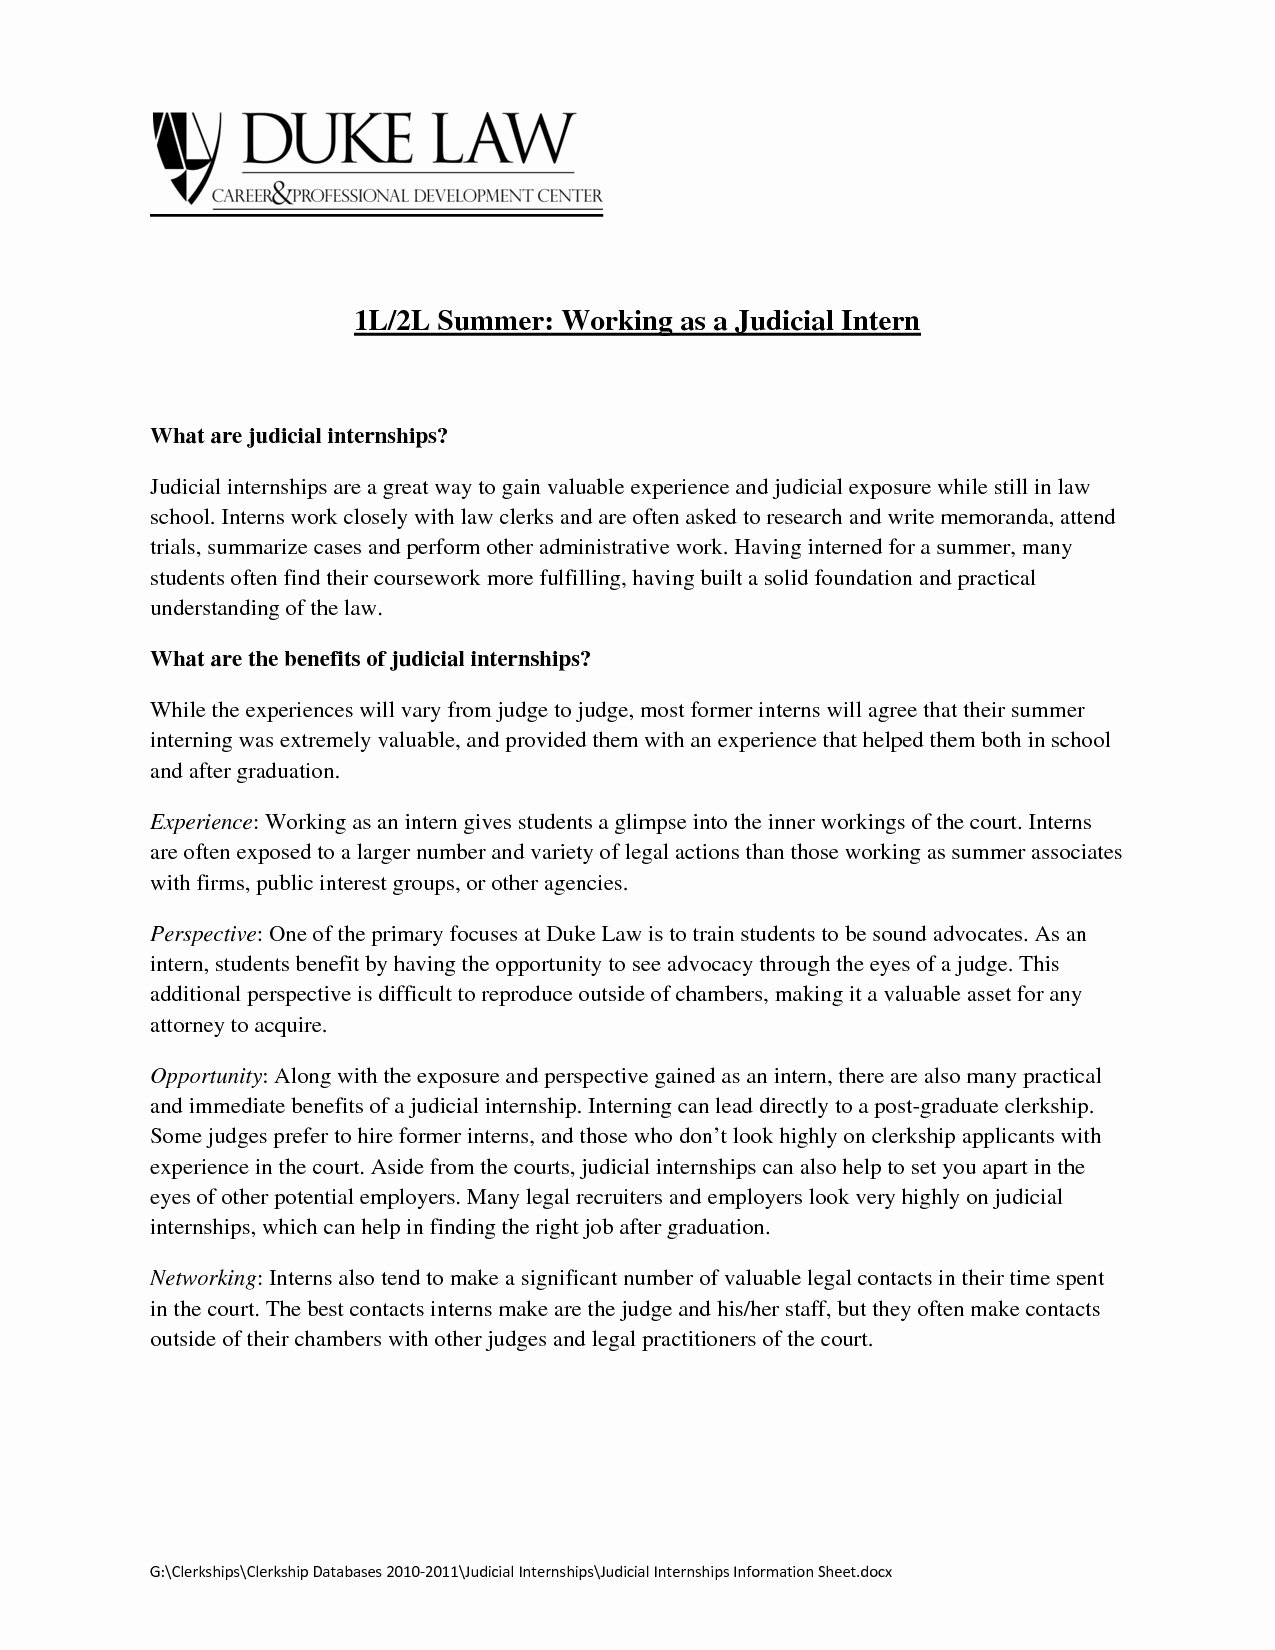 Cover Letter for Law School Graduate